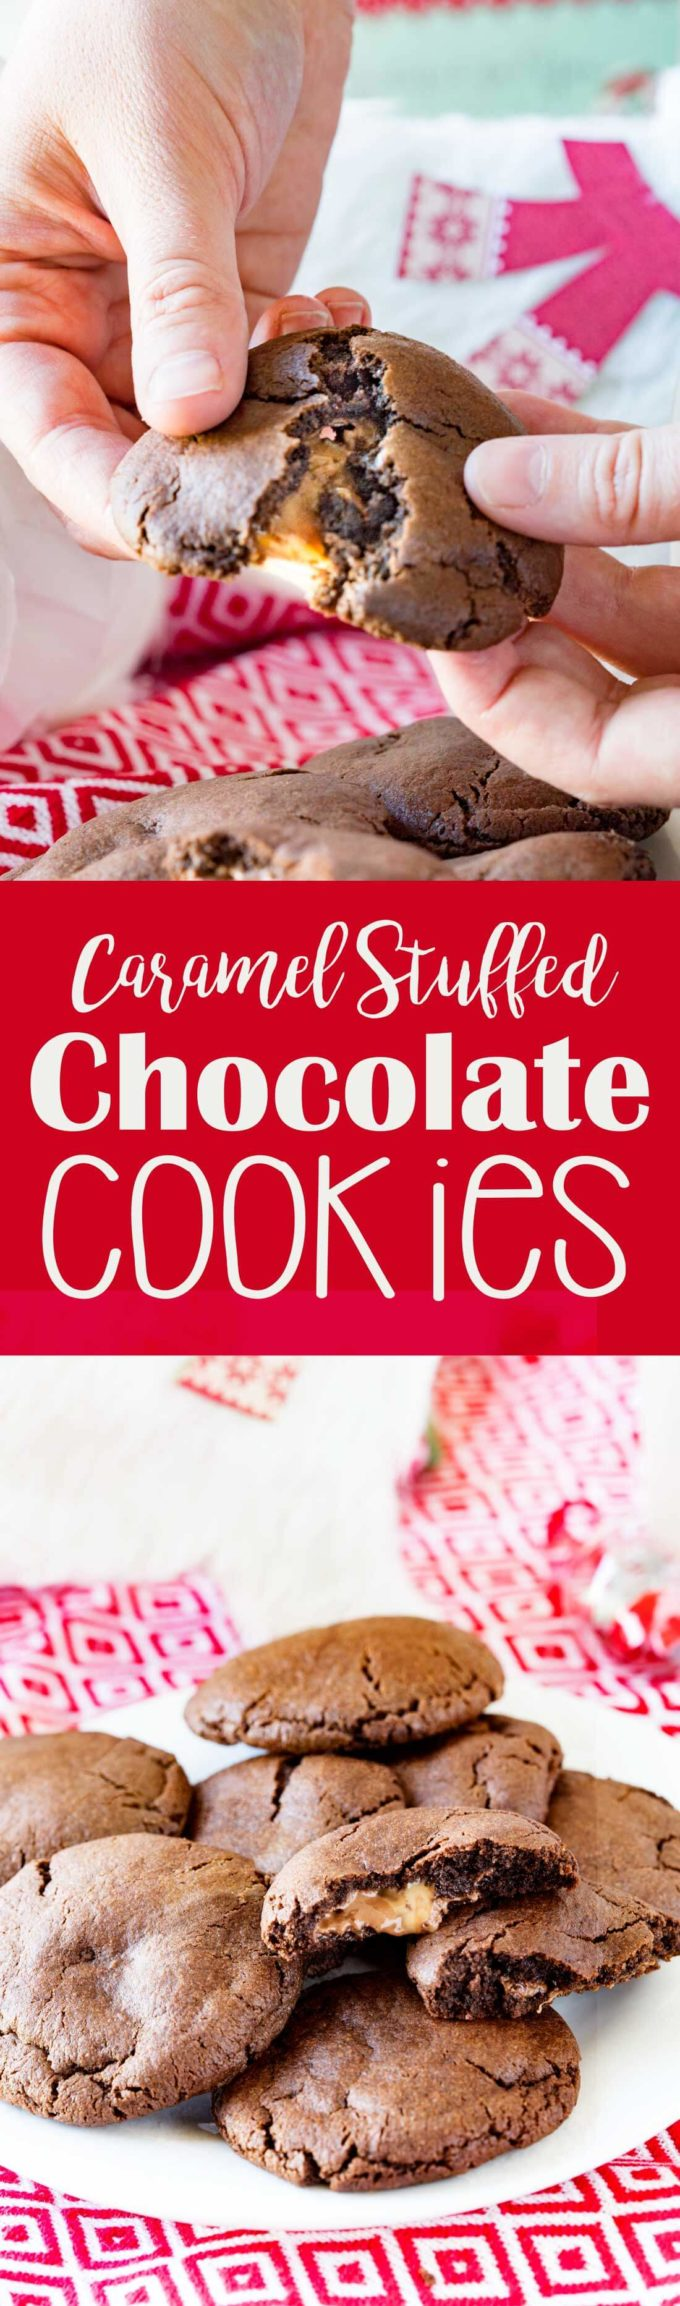 Carmel Stuffed Chocolate Cookies make a great Santa cookie. They are tasty, fun, and help make the holidays bright. you will be anxious to sink your teeth into these chocolatey cookies with a carmel surprise.